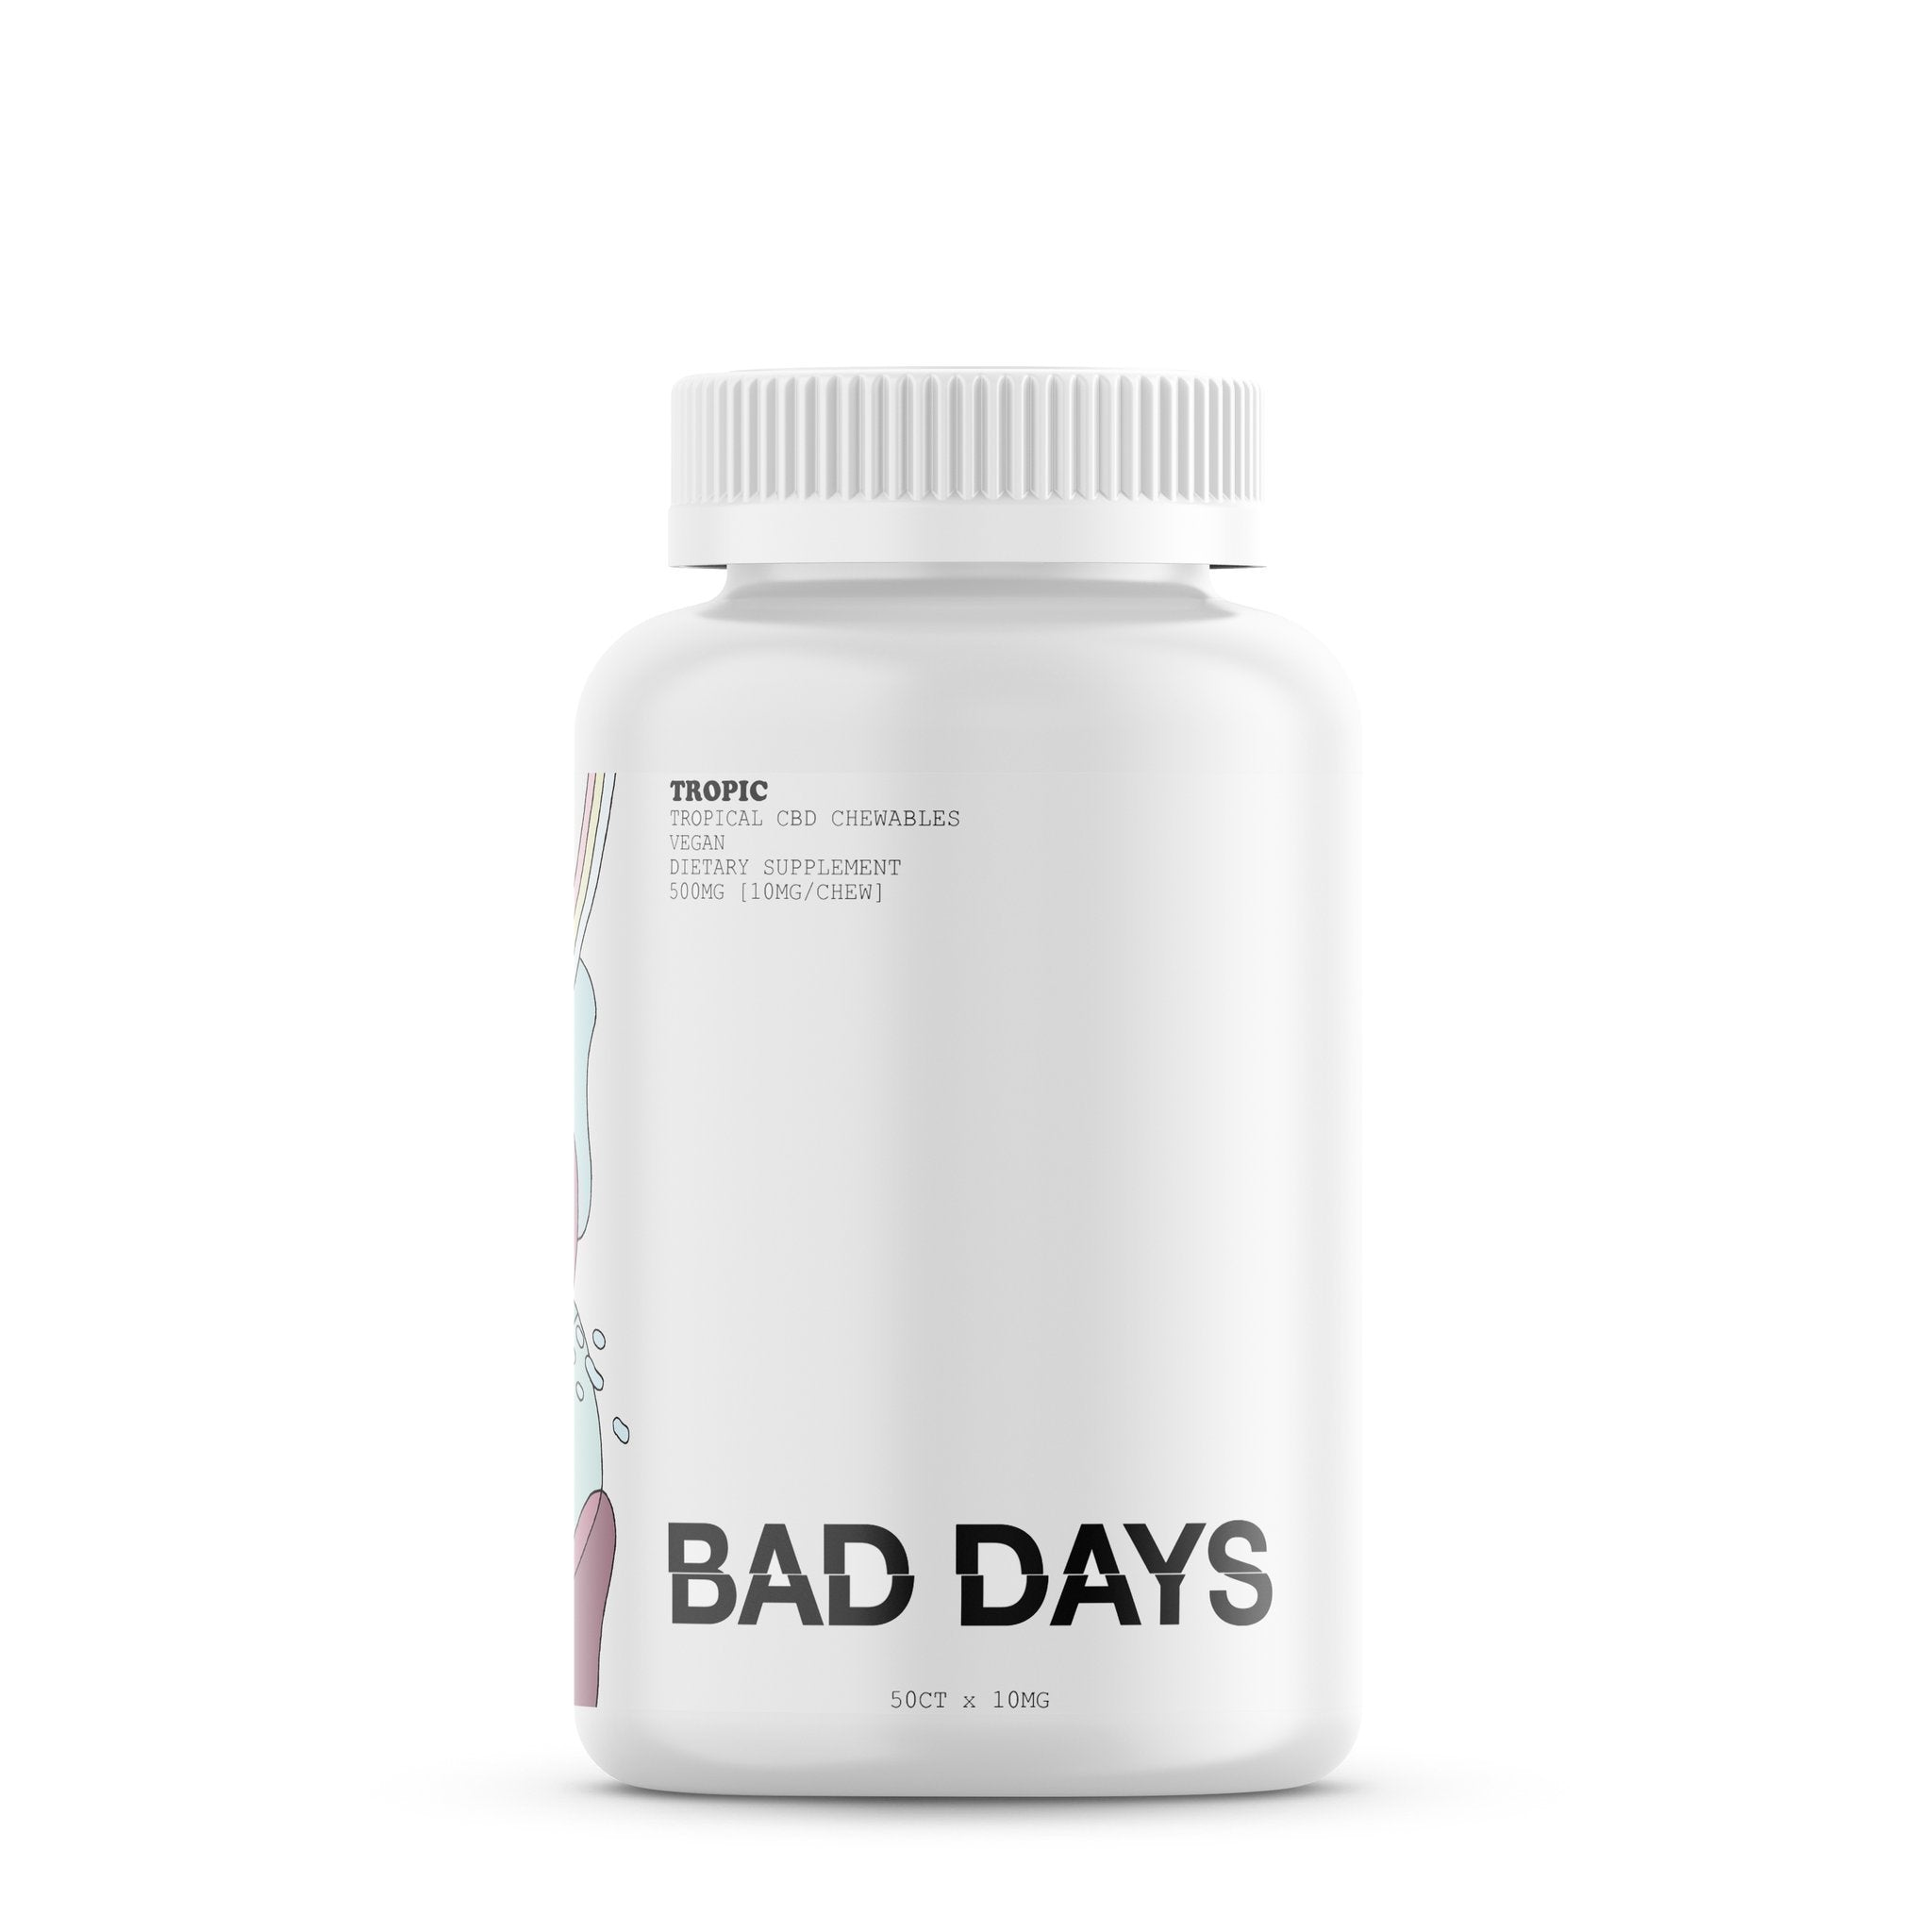 Bad Days Tropic CBD Gummies